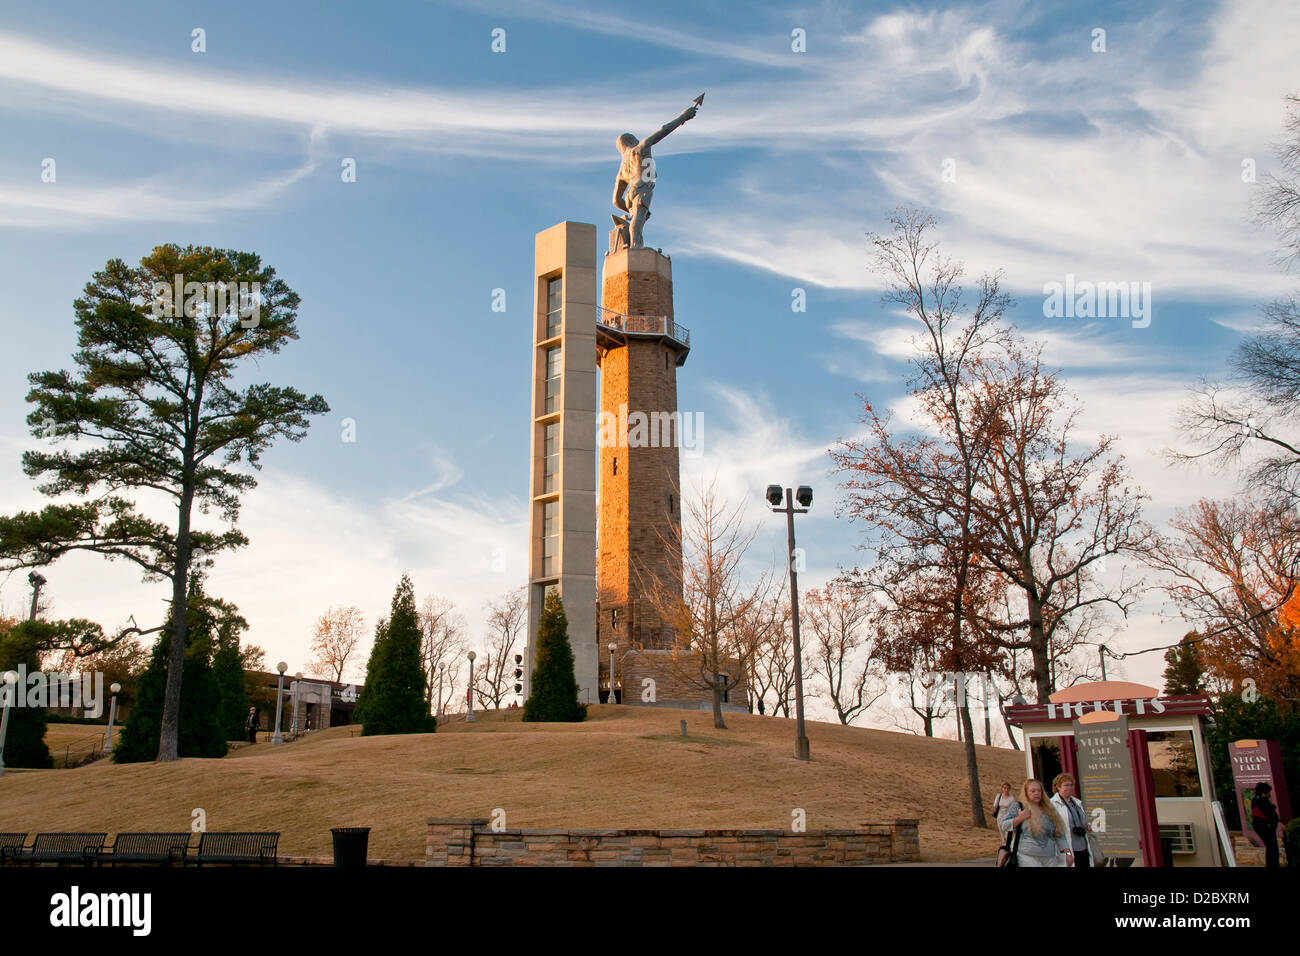 The worlds largest cast iron statue Vulcan statue on Red Mountain, Birmingham, Alabama, USA, North America Stock Photo